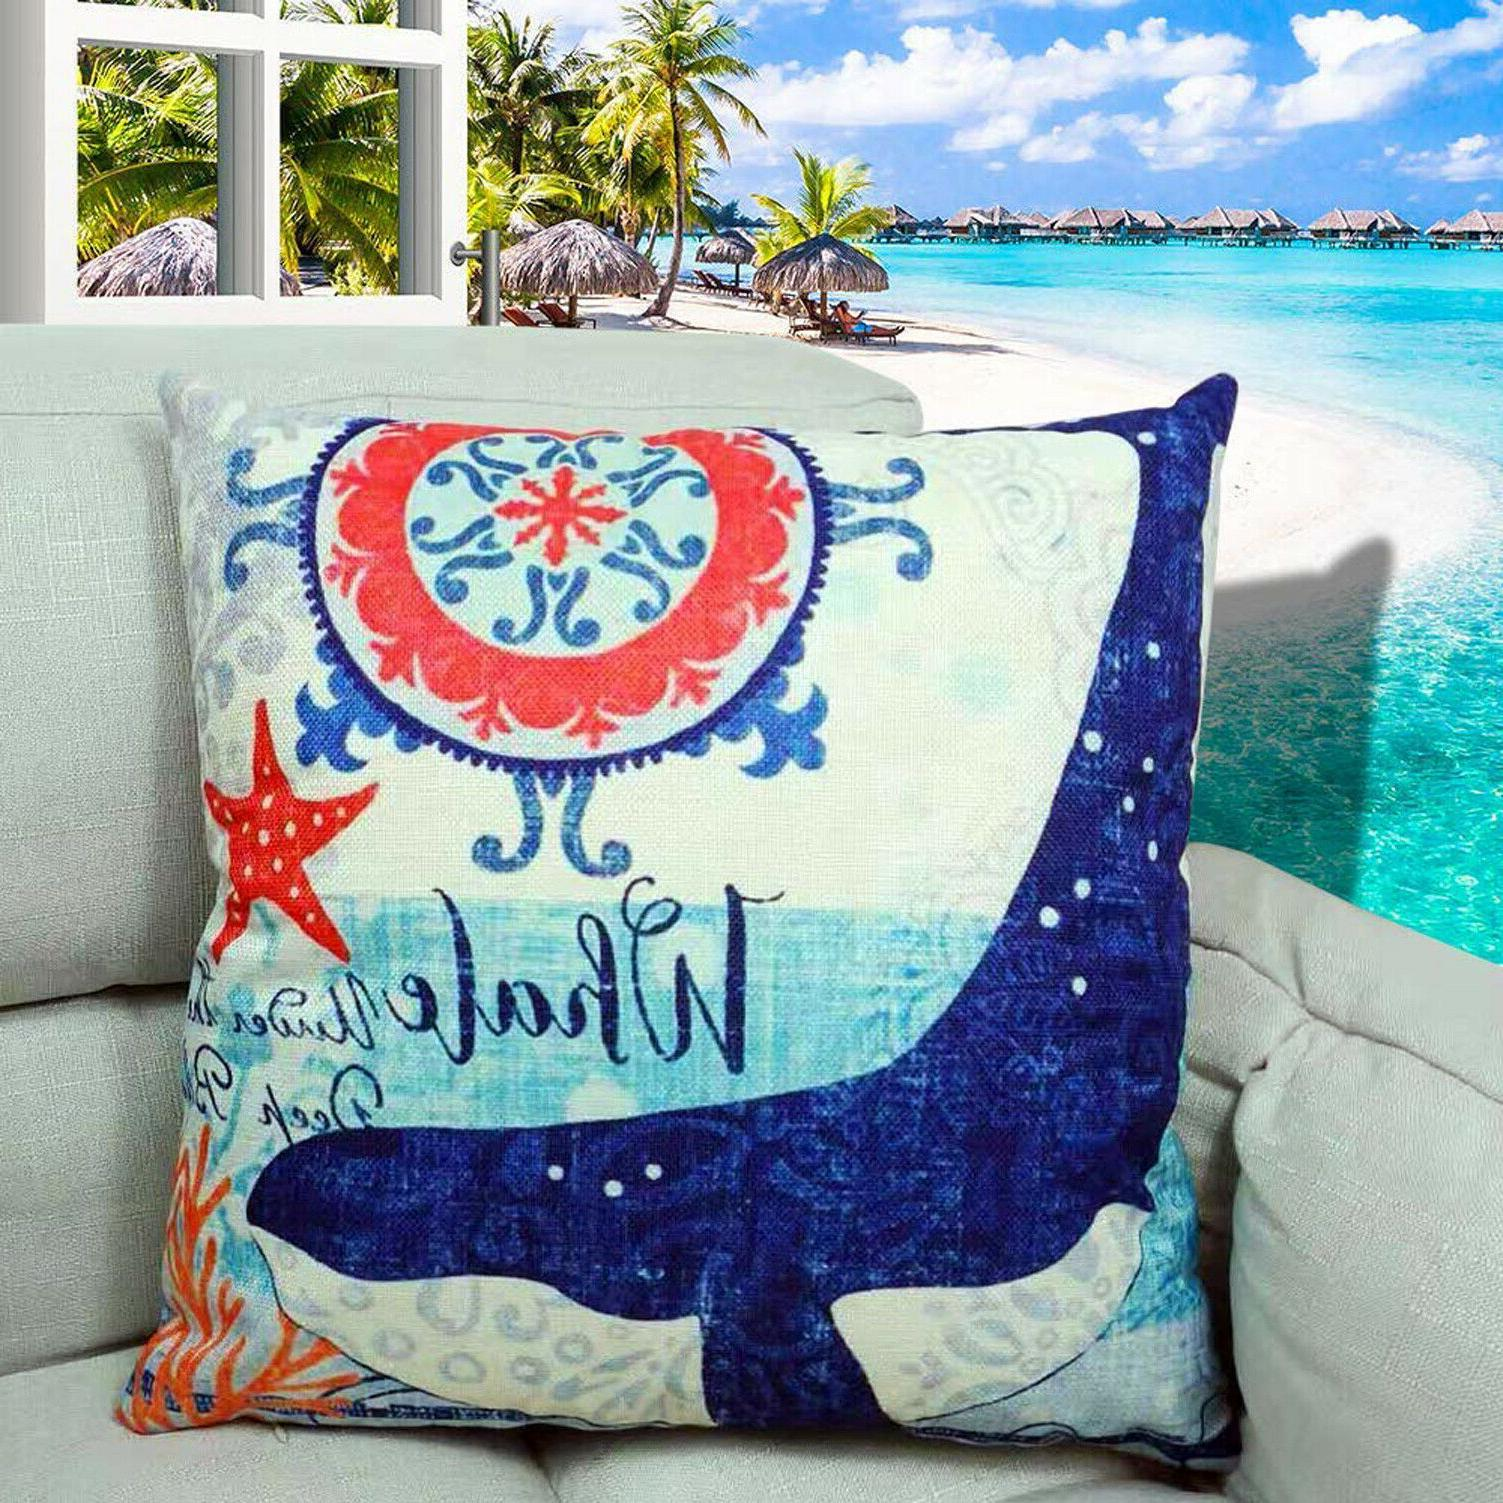 Ocean Coastal Decor Pillow Case Couch Bench